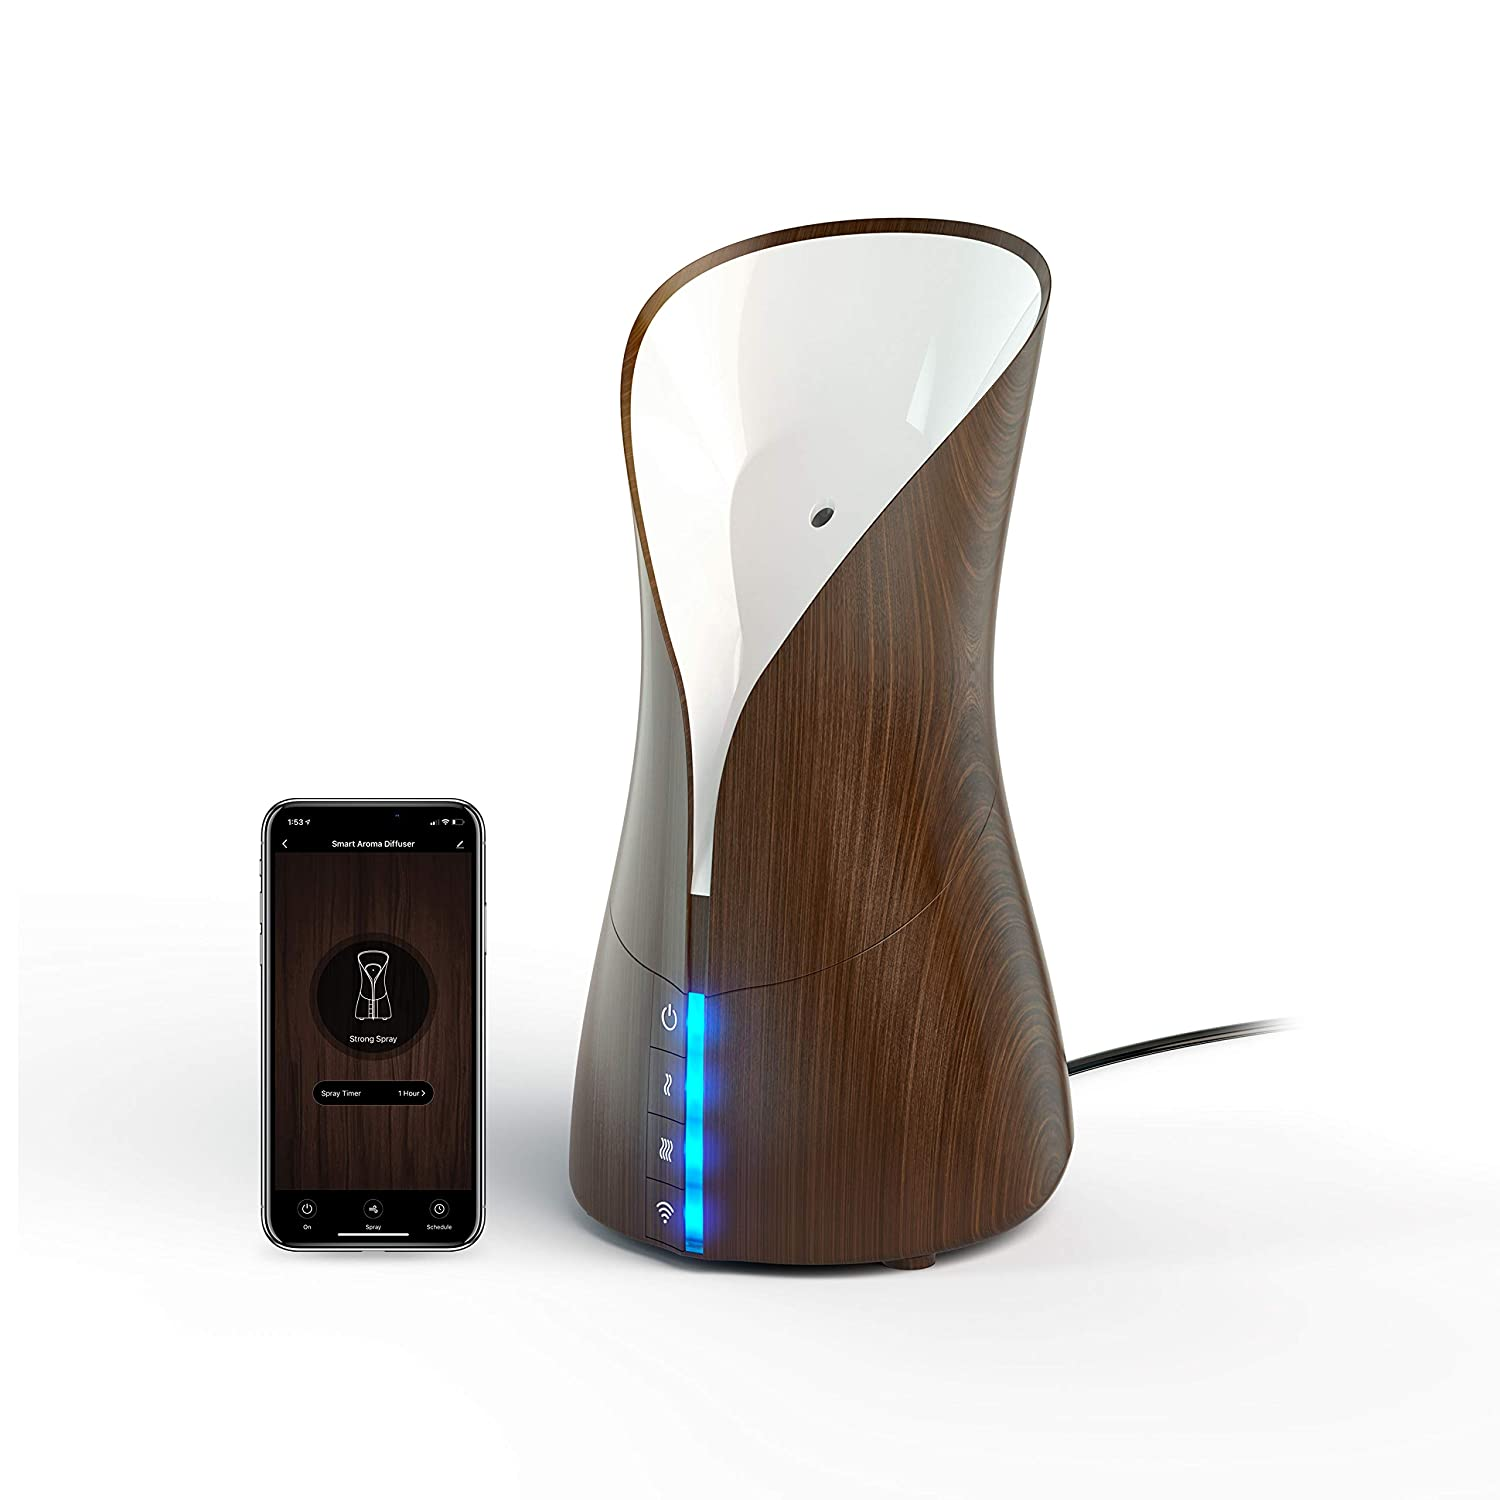 Atomi Smart Aromatherapy Diffuser - 250ml Essential Oil Diffuser, Cool Mist Humidifier, WiFi-Compatible with Alexa, Google Assistant, iOS, Android, and the Atomi Smart App, Dark Wood Grain